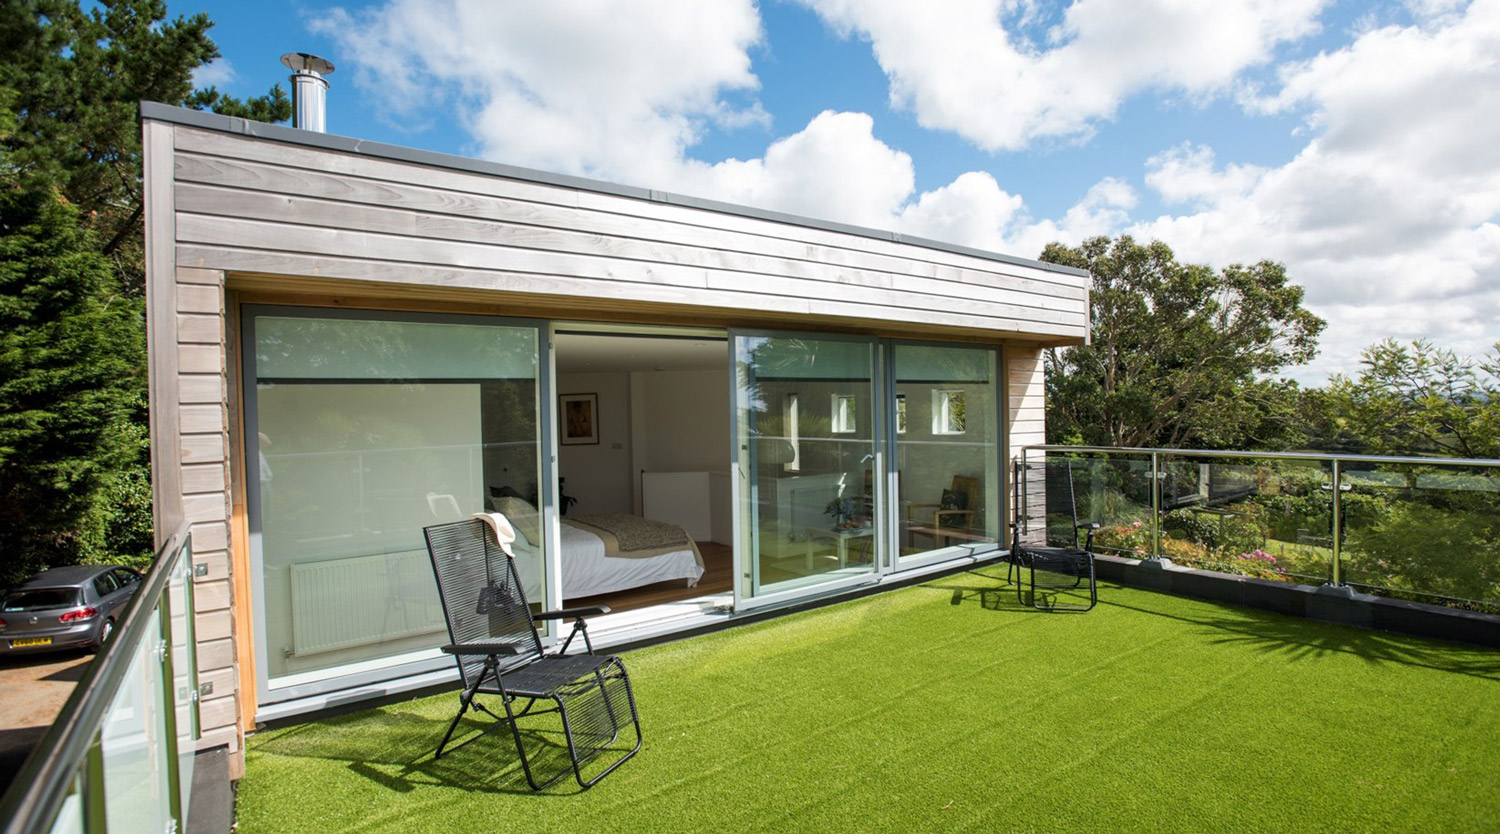 roof garden deck designed by architect in Cornwall